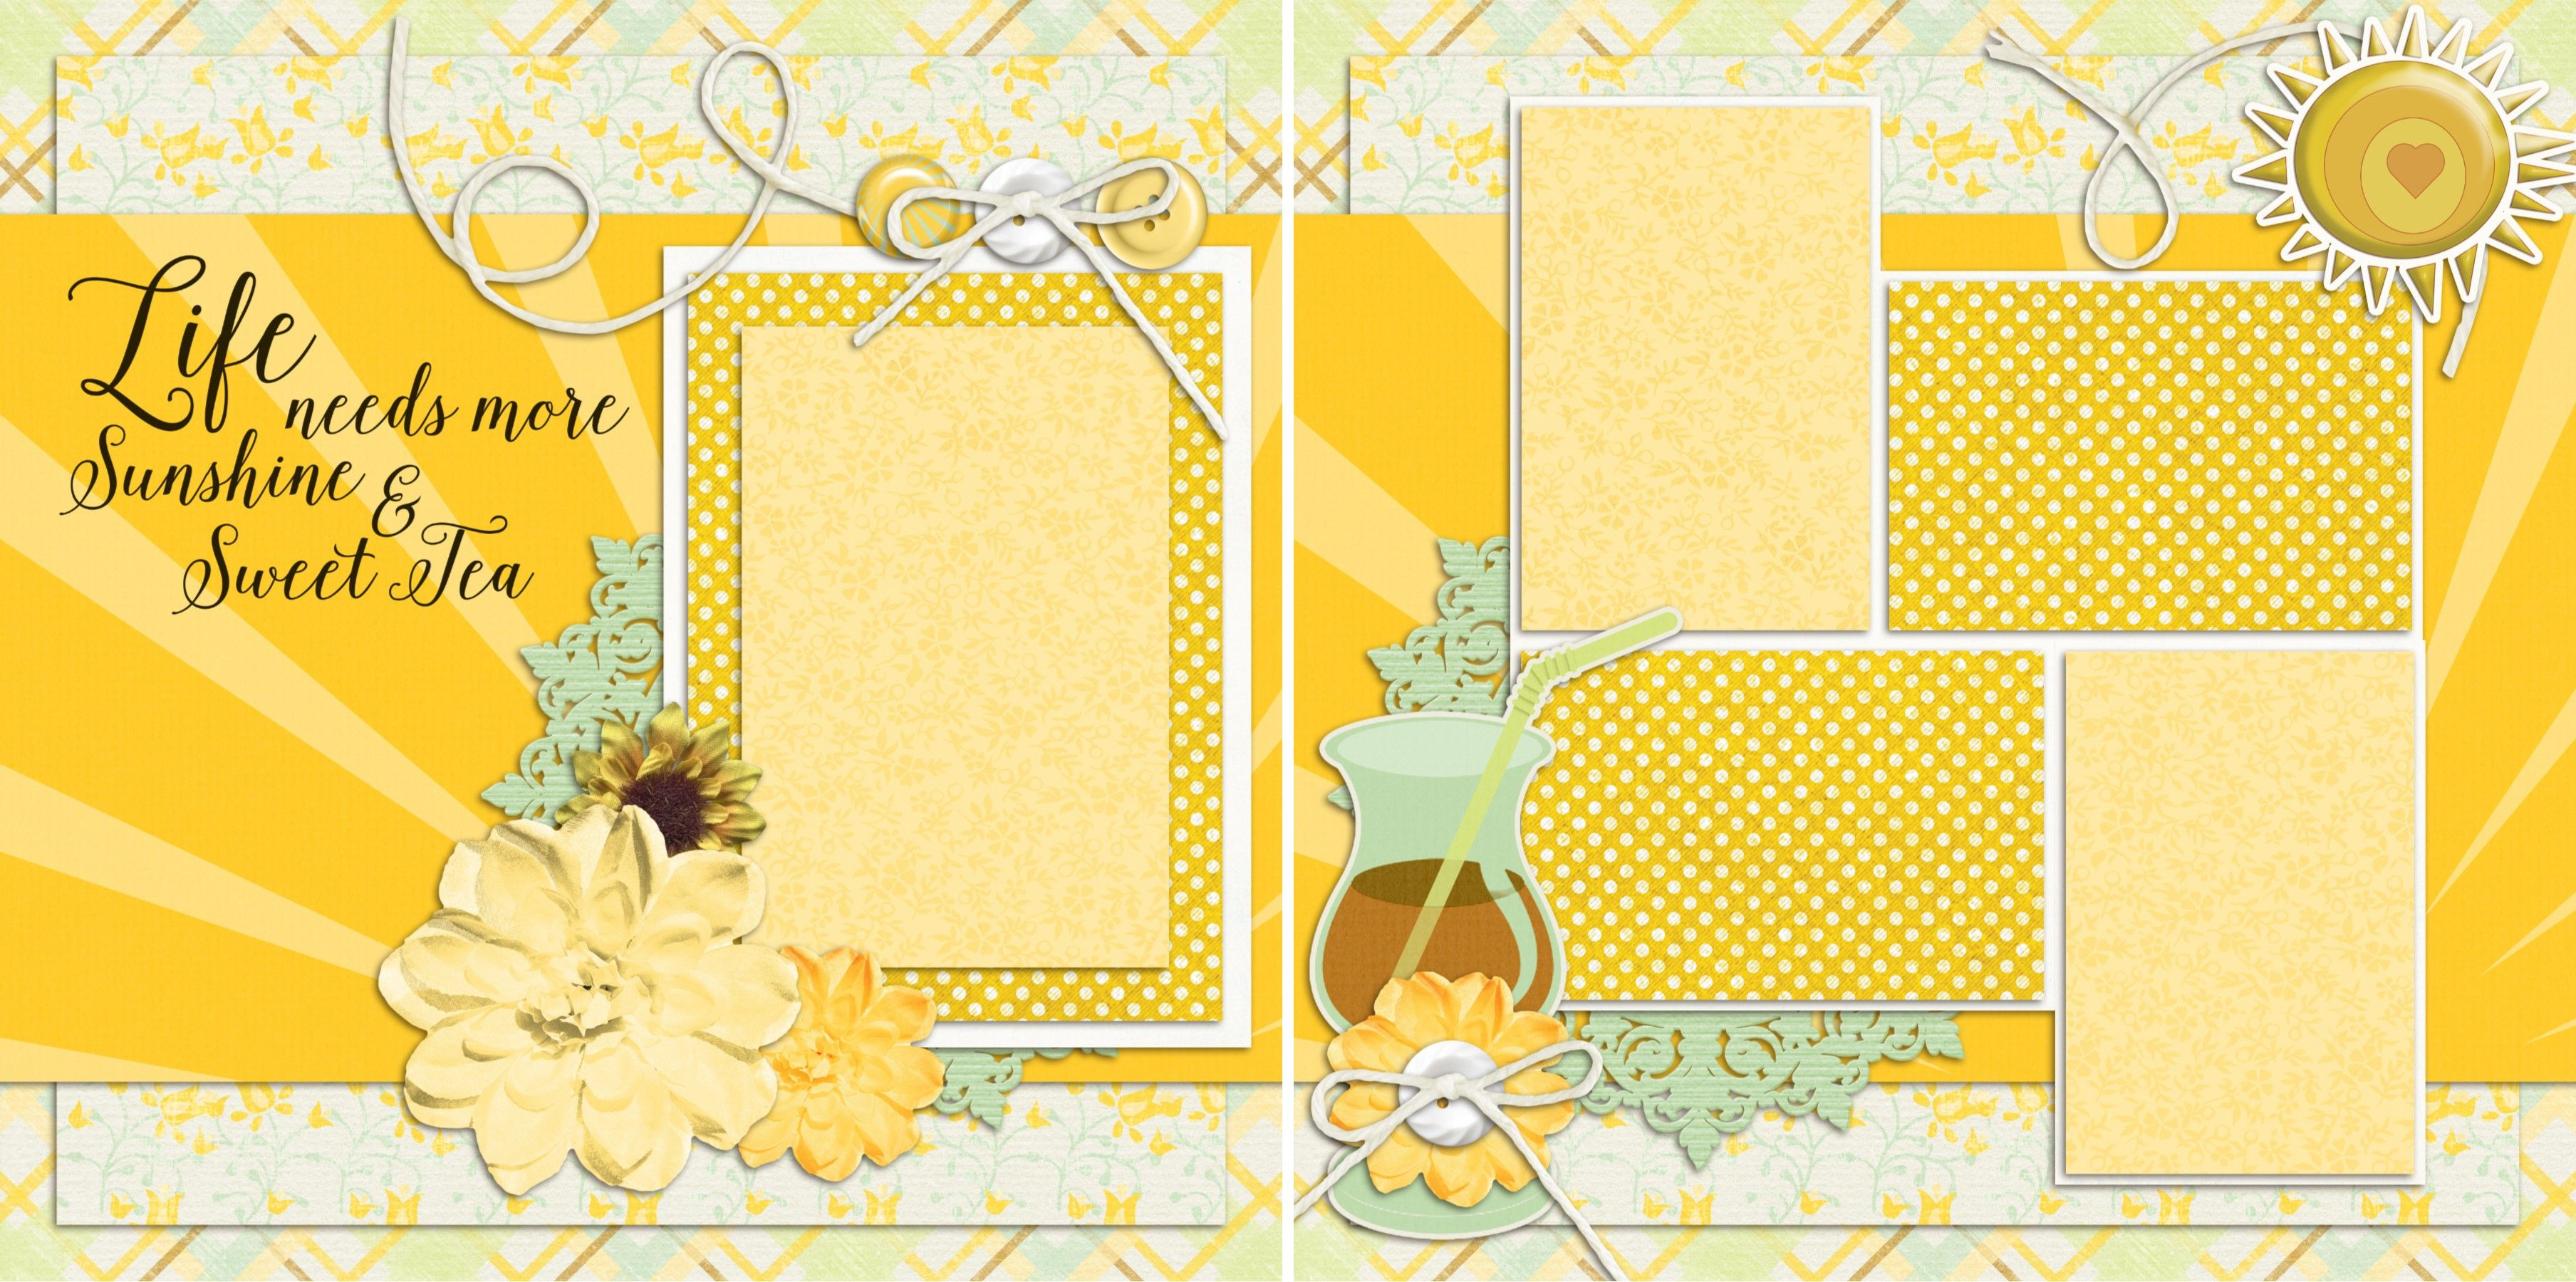 How to add scrapbook pages - Premade Scrapbook Pages Southern Sweet Tea Just Add Photos